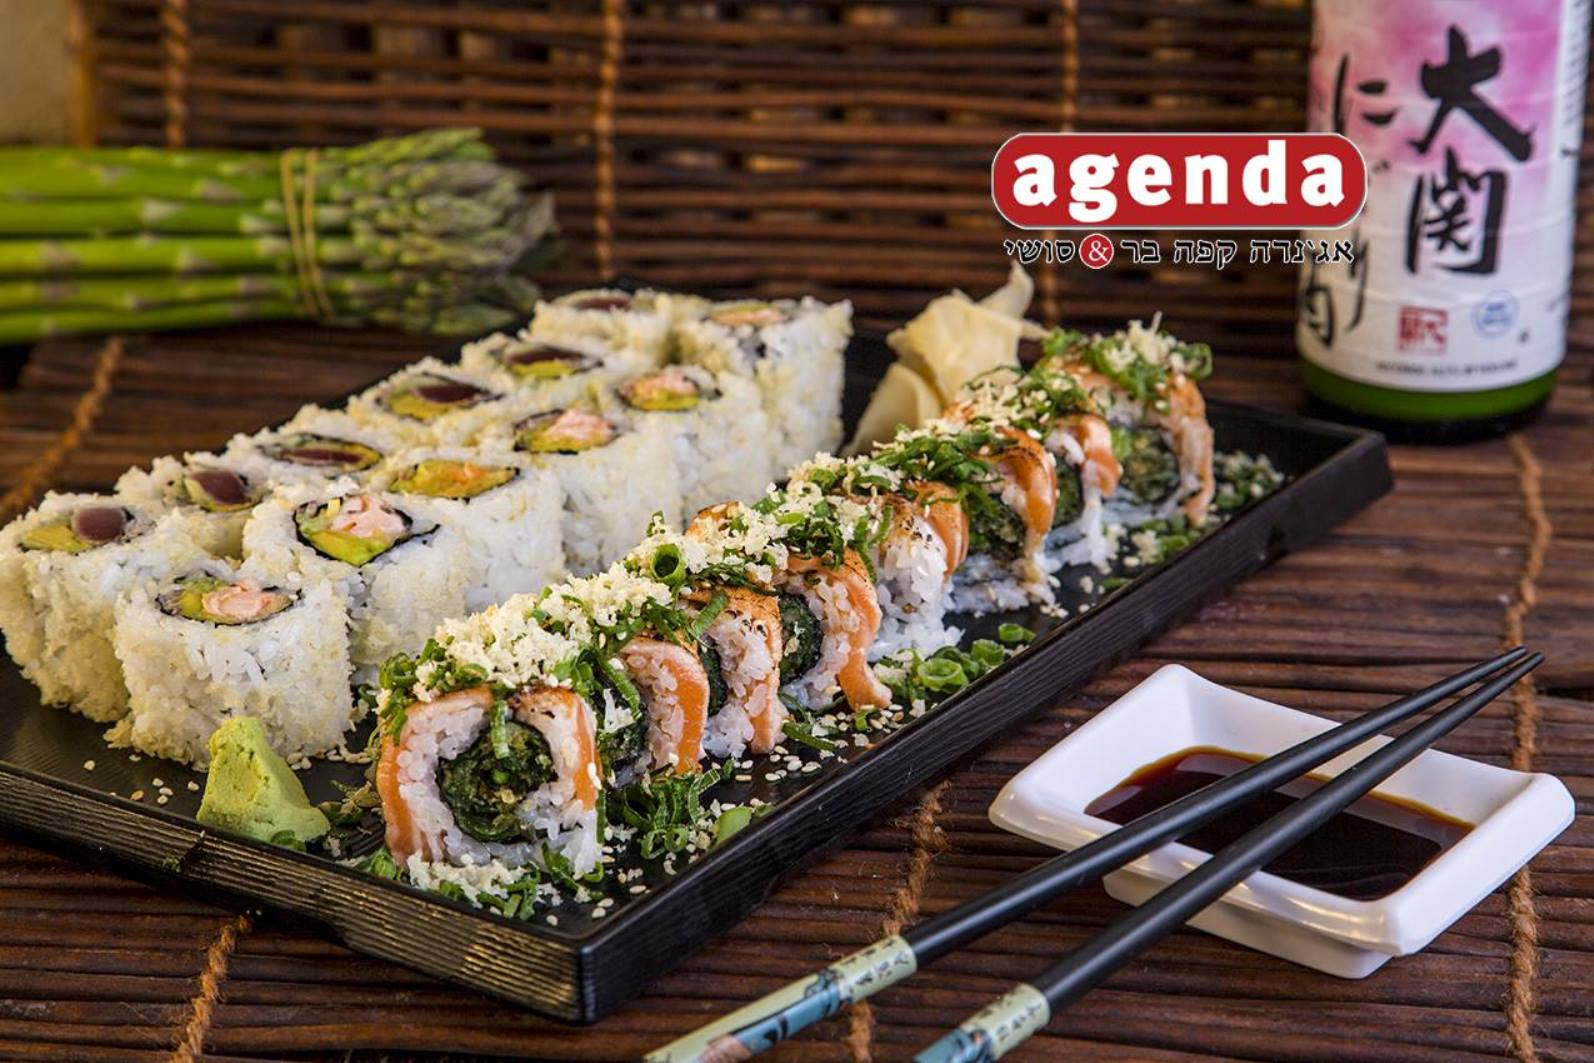 Sushi at Agenda is considered top-notch. Photo via Facebook